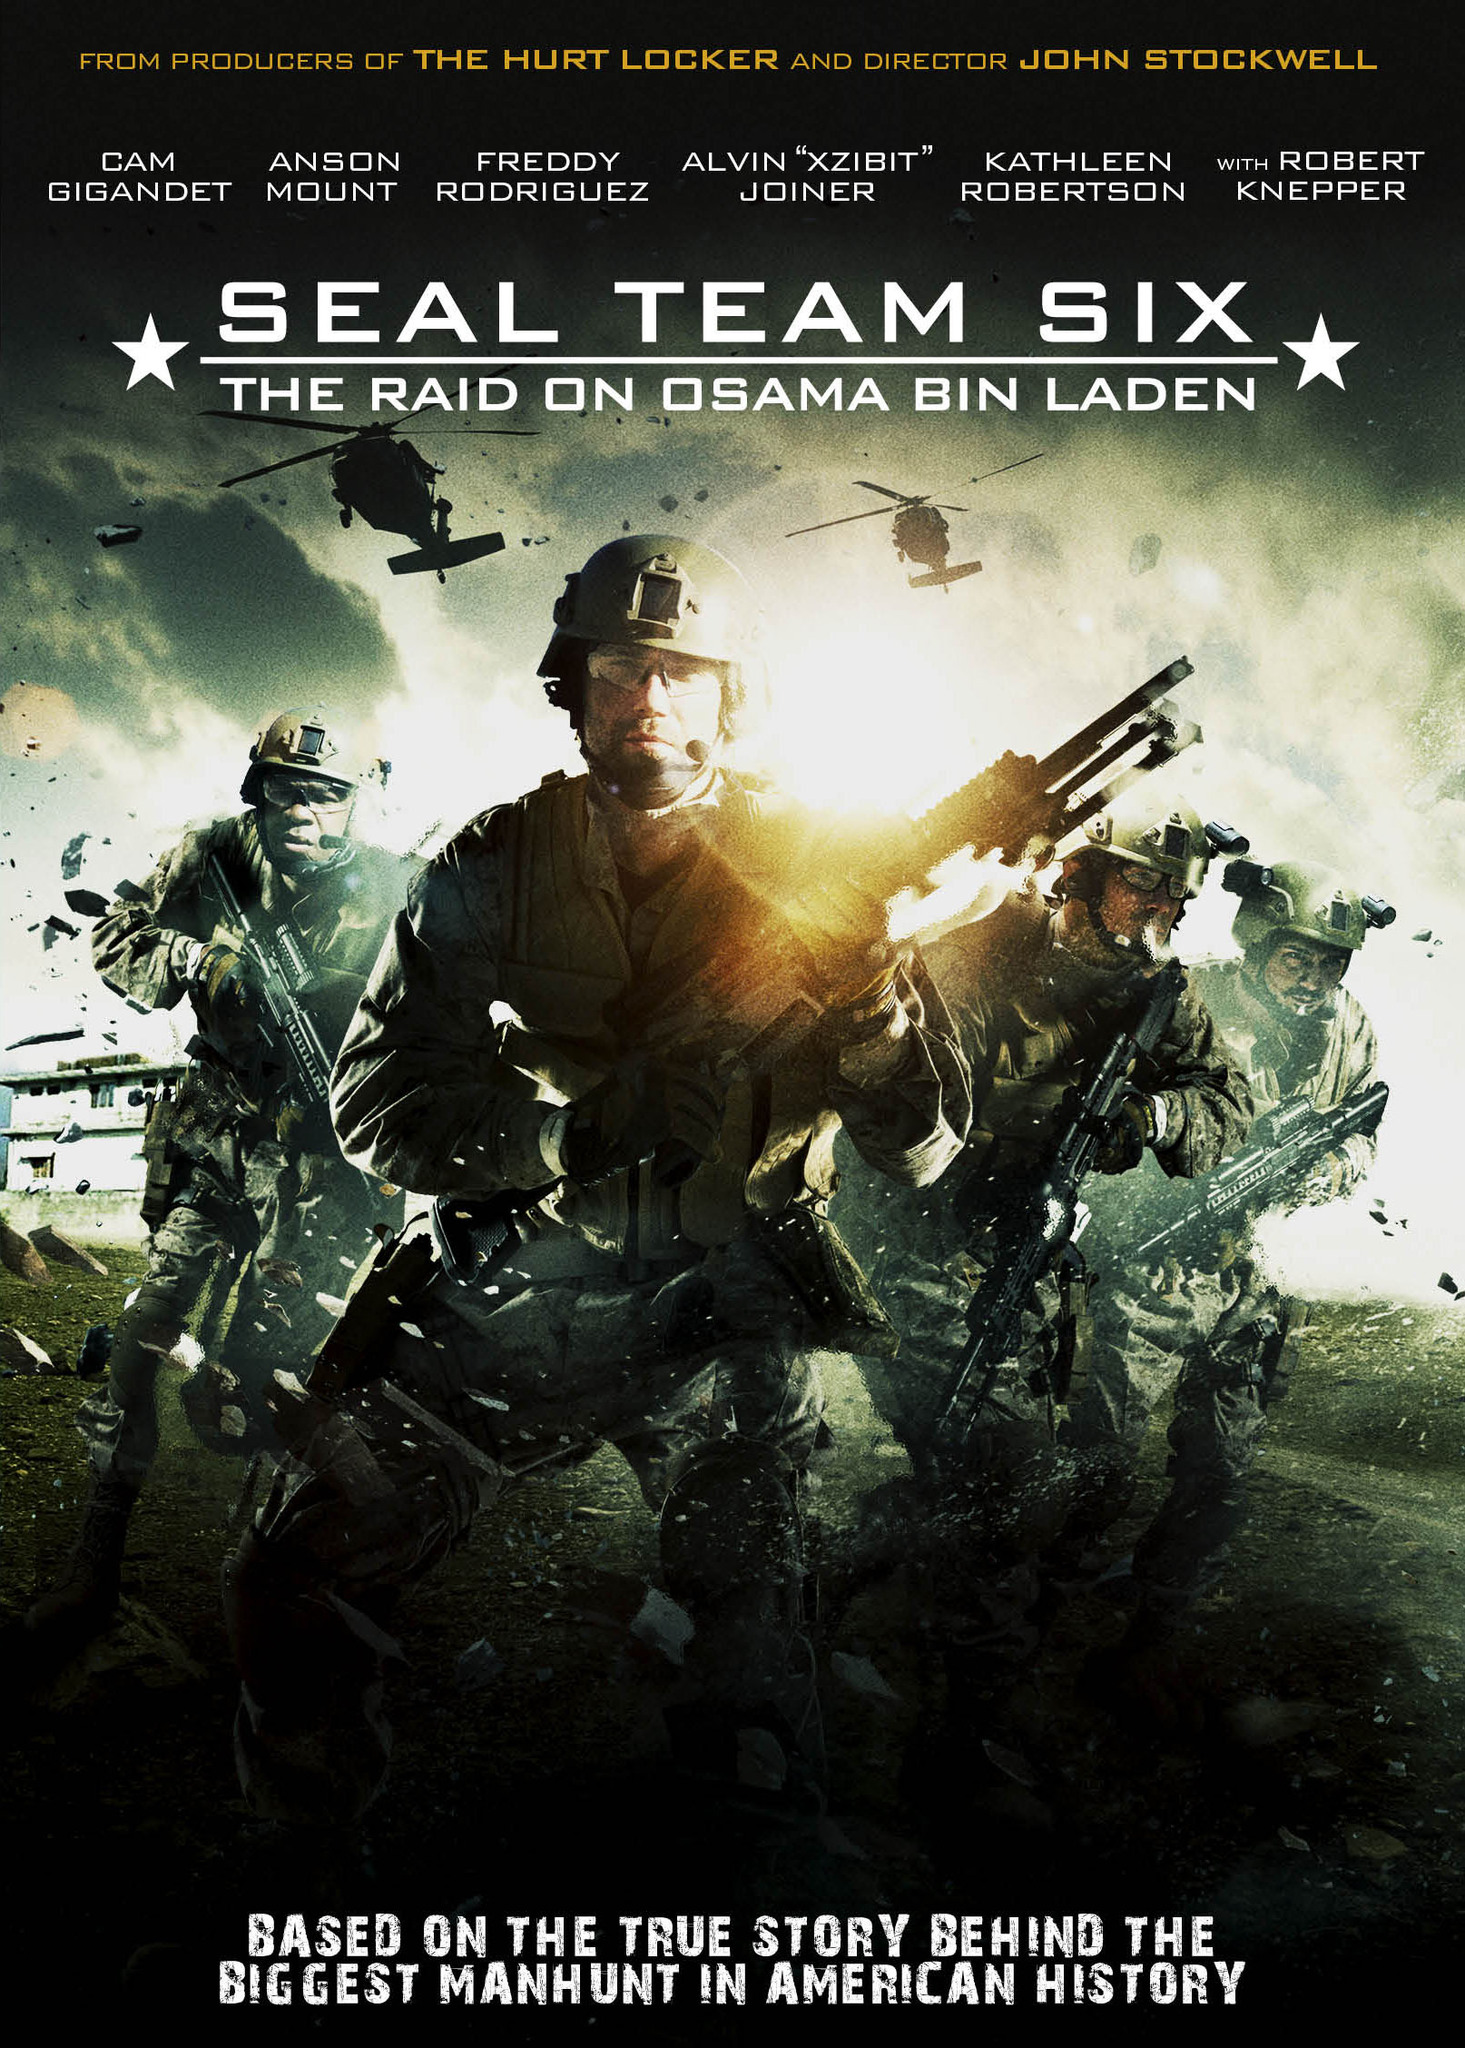 Seal Team Six: The Raid on Osama Bin Laden (TV Movie 2012